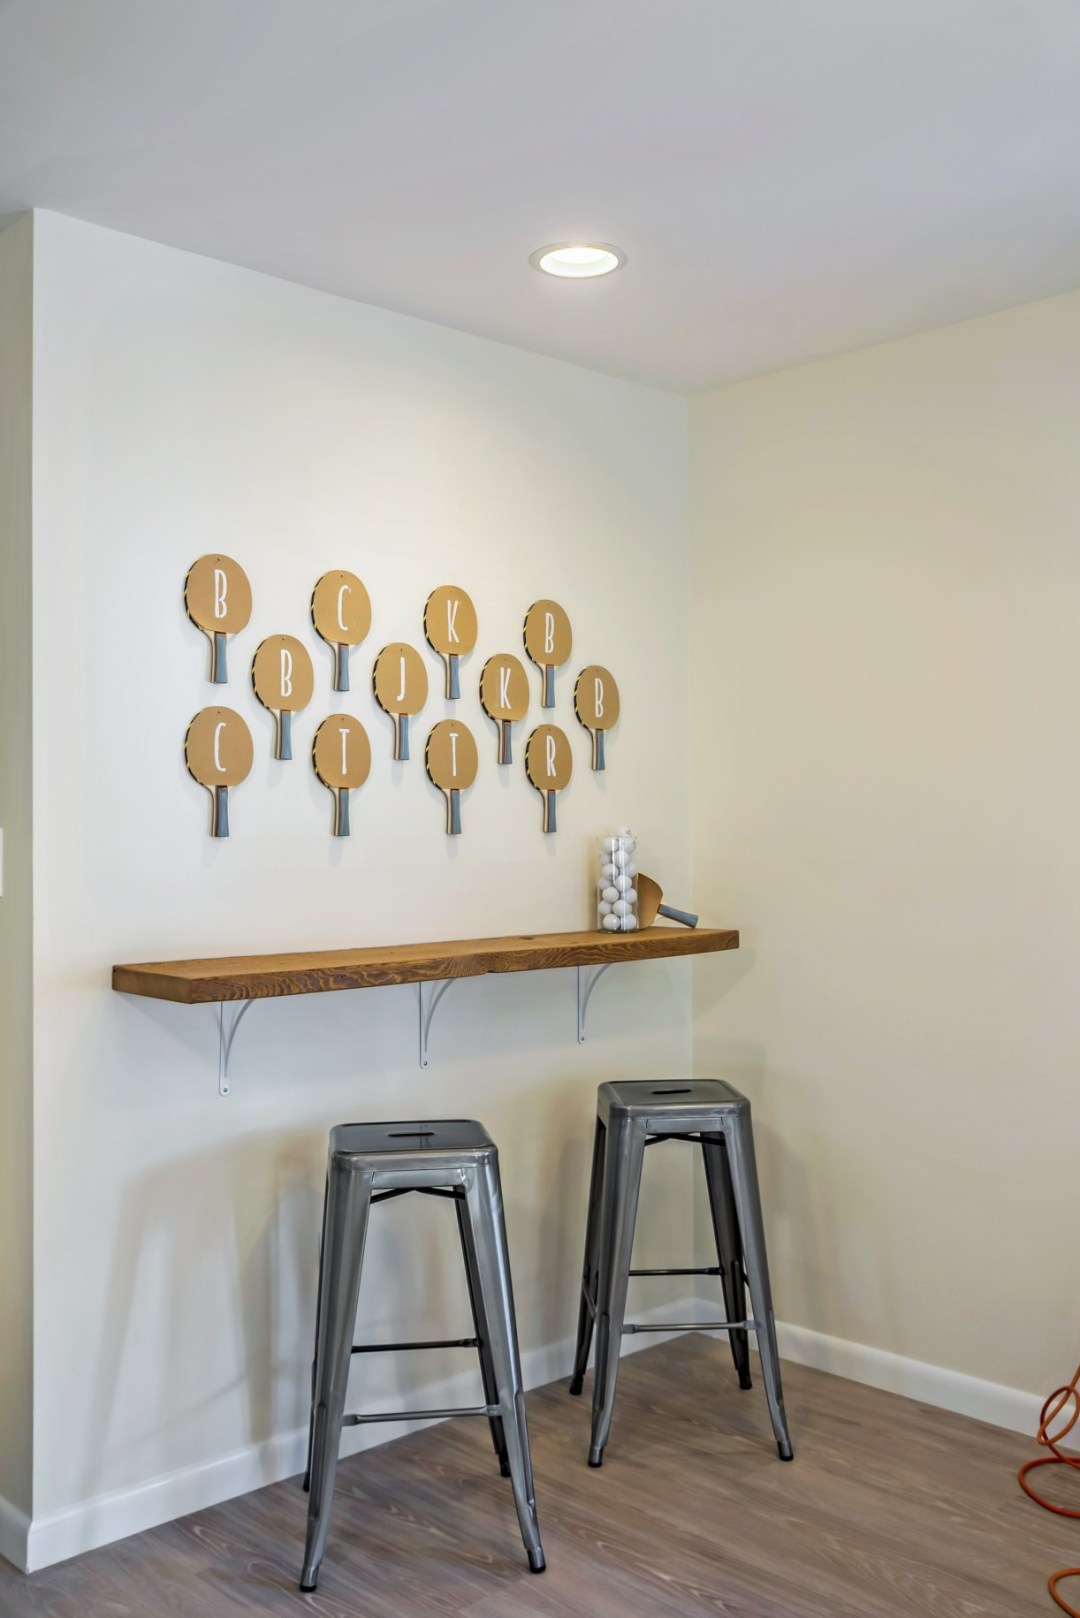 Table Tennis Wall with Personalized Ping Pong Paddles in Wellington Parkway, Bethany Beach DE Renovation